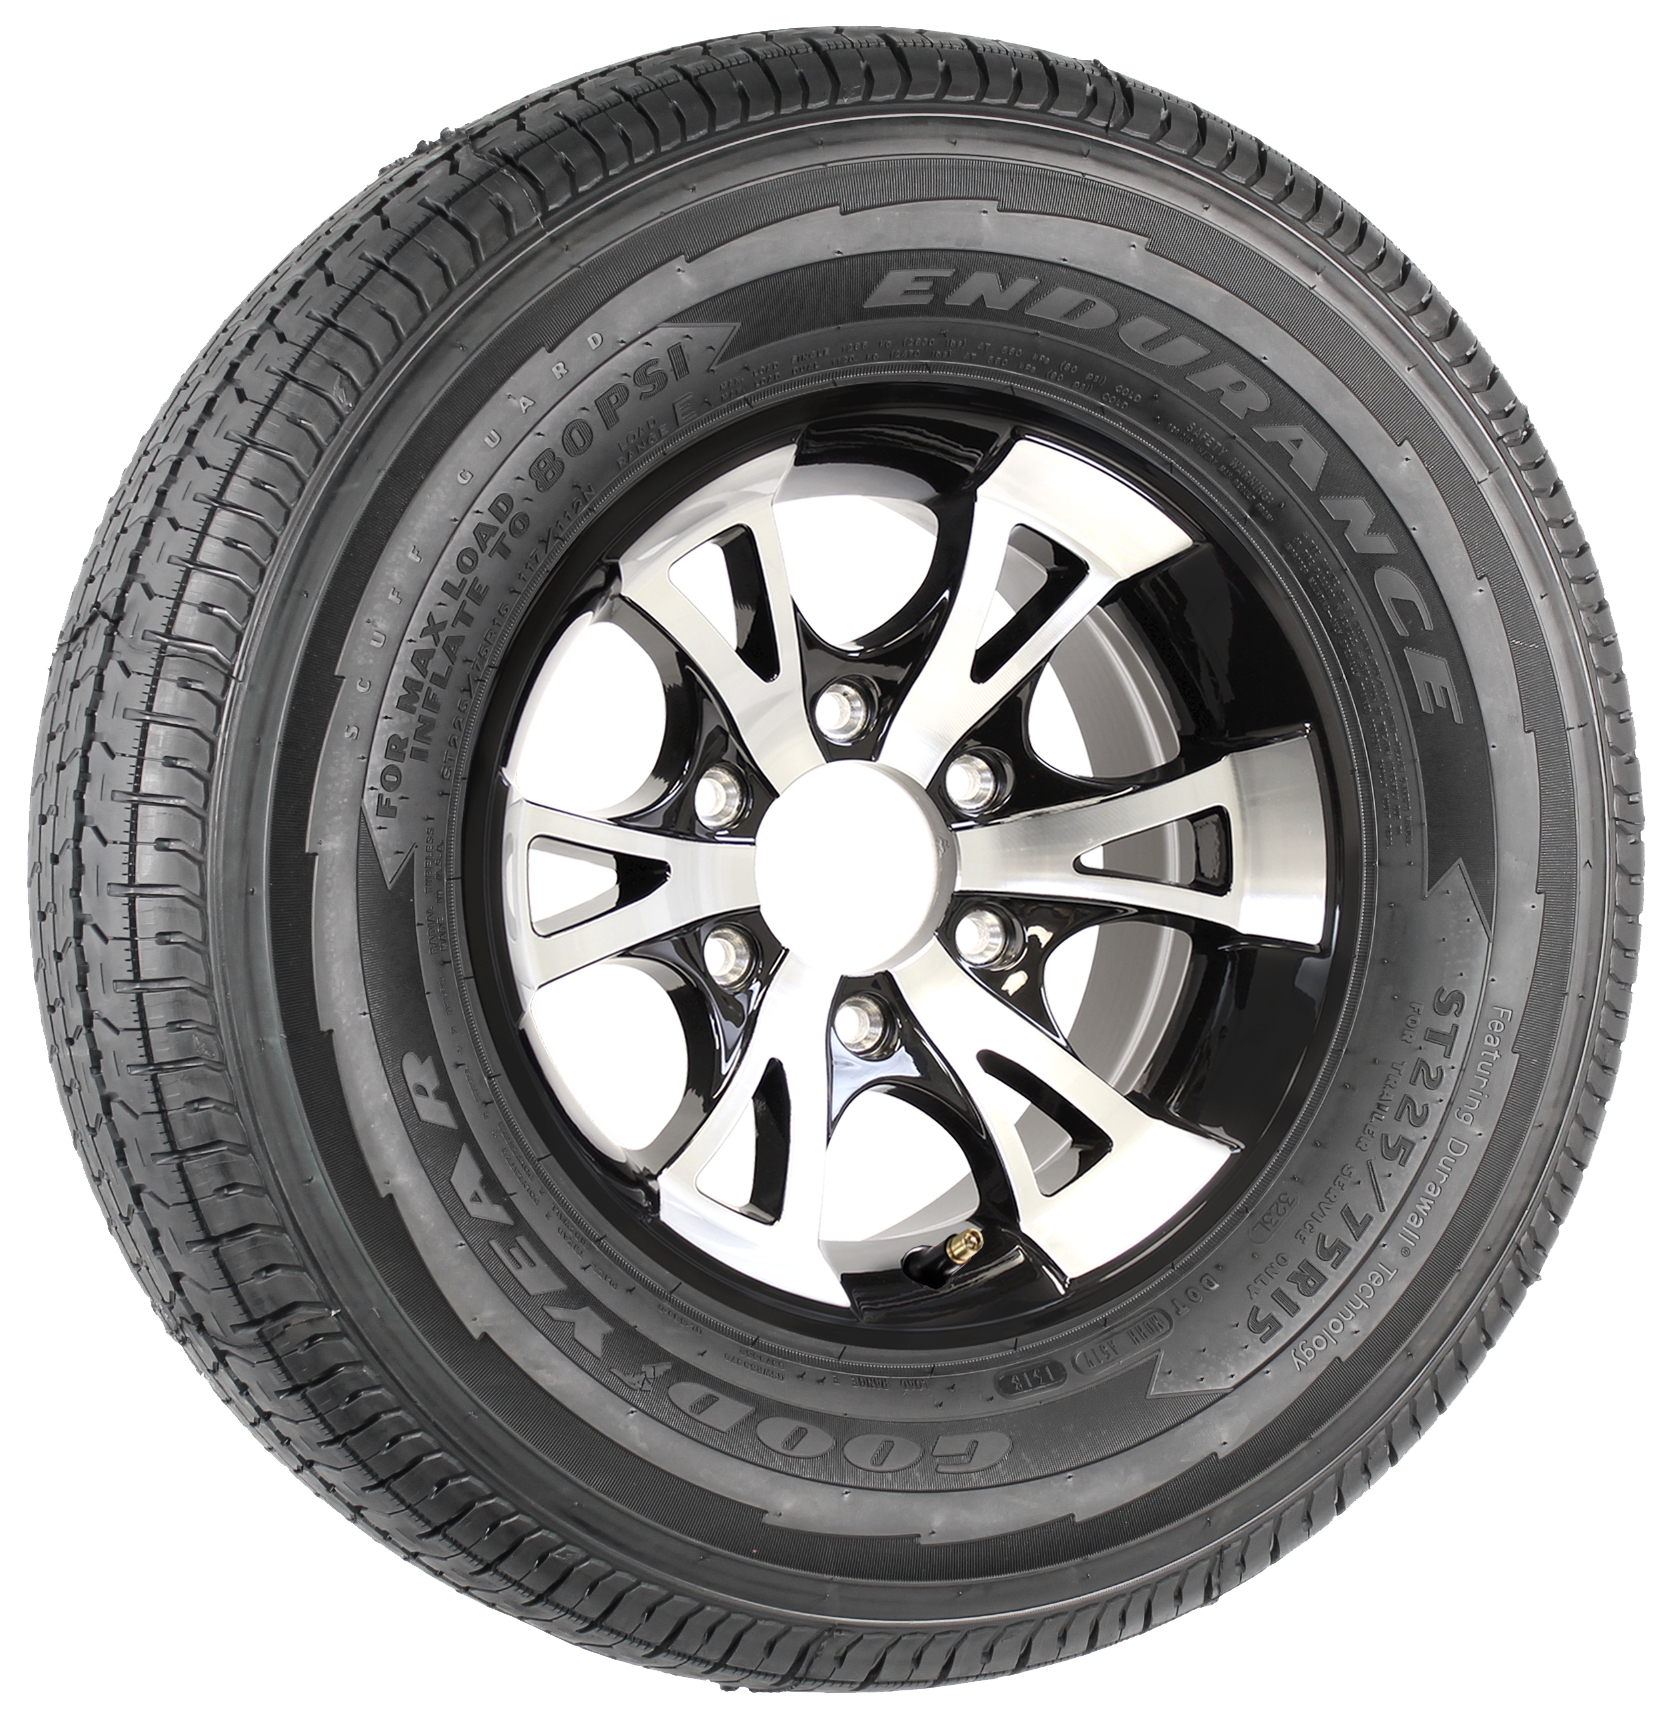 """Goodyear Endurance ST225/75R15 LRE Radial Tire on 15"""" 6-Lug A1411 Black Aluminum Assembly Image"""